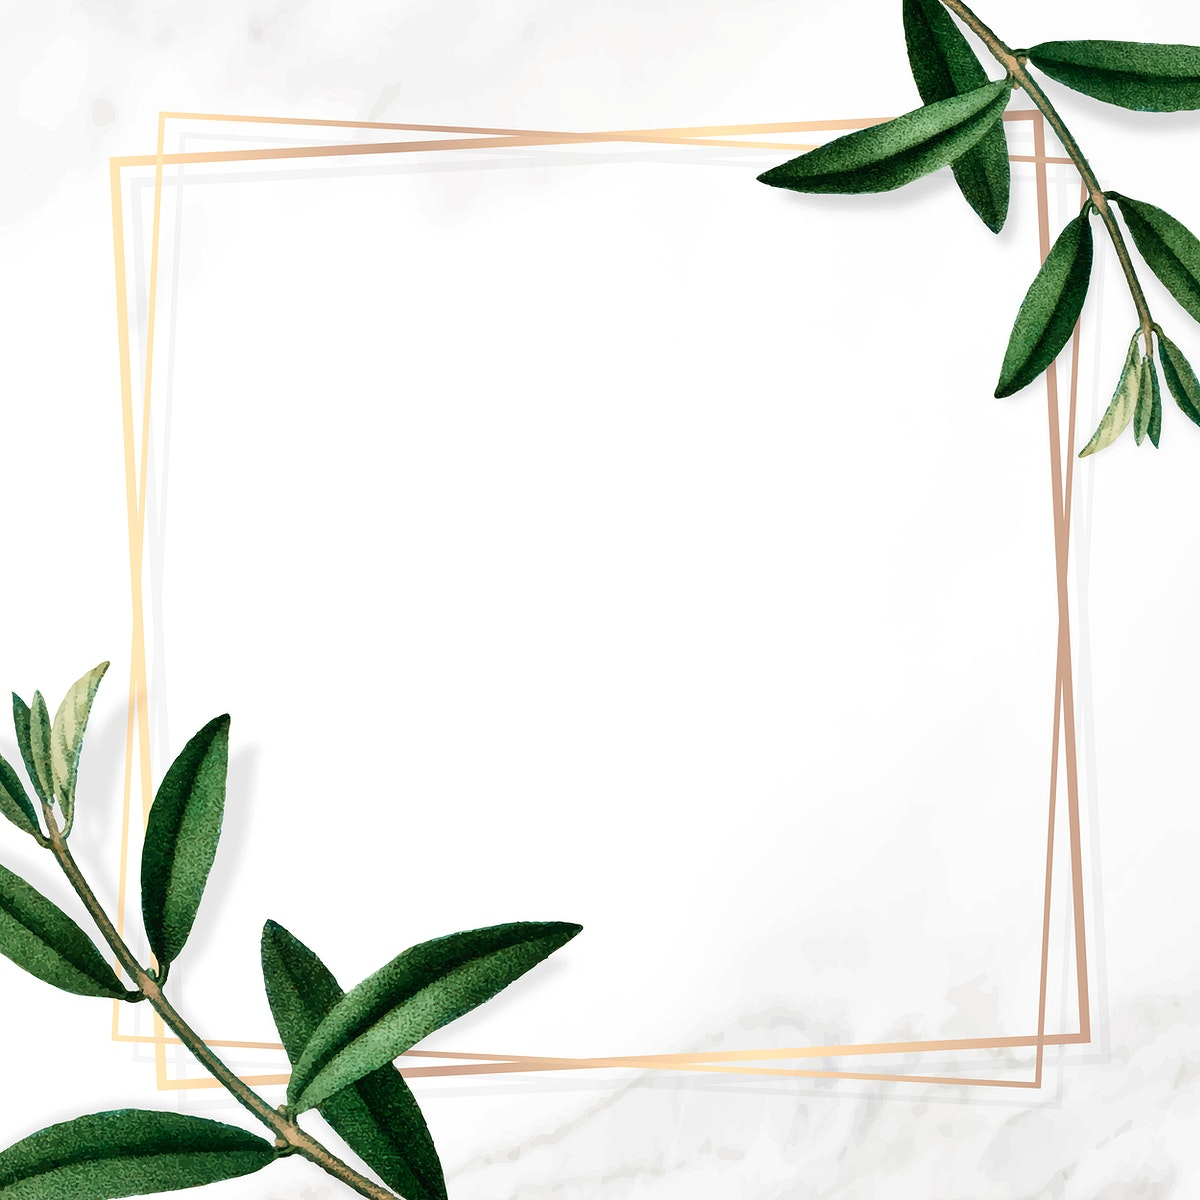 Gold frame with green leaves on white background vector